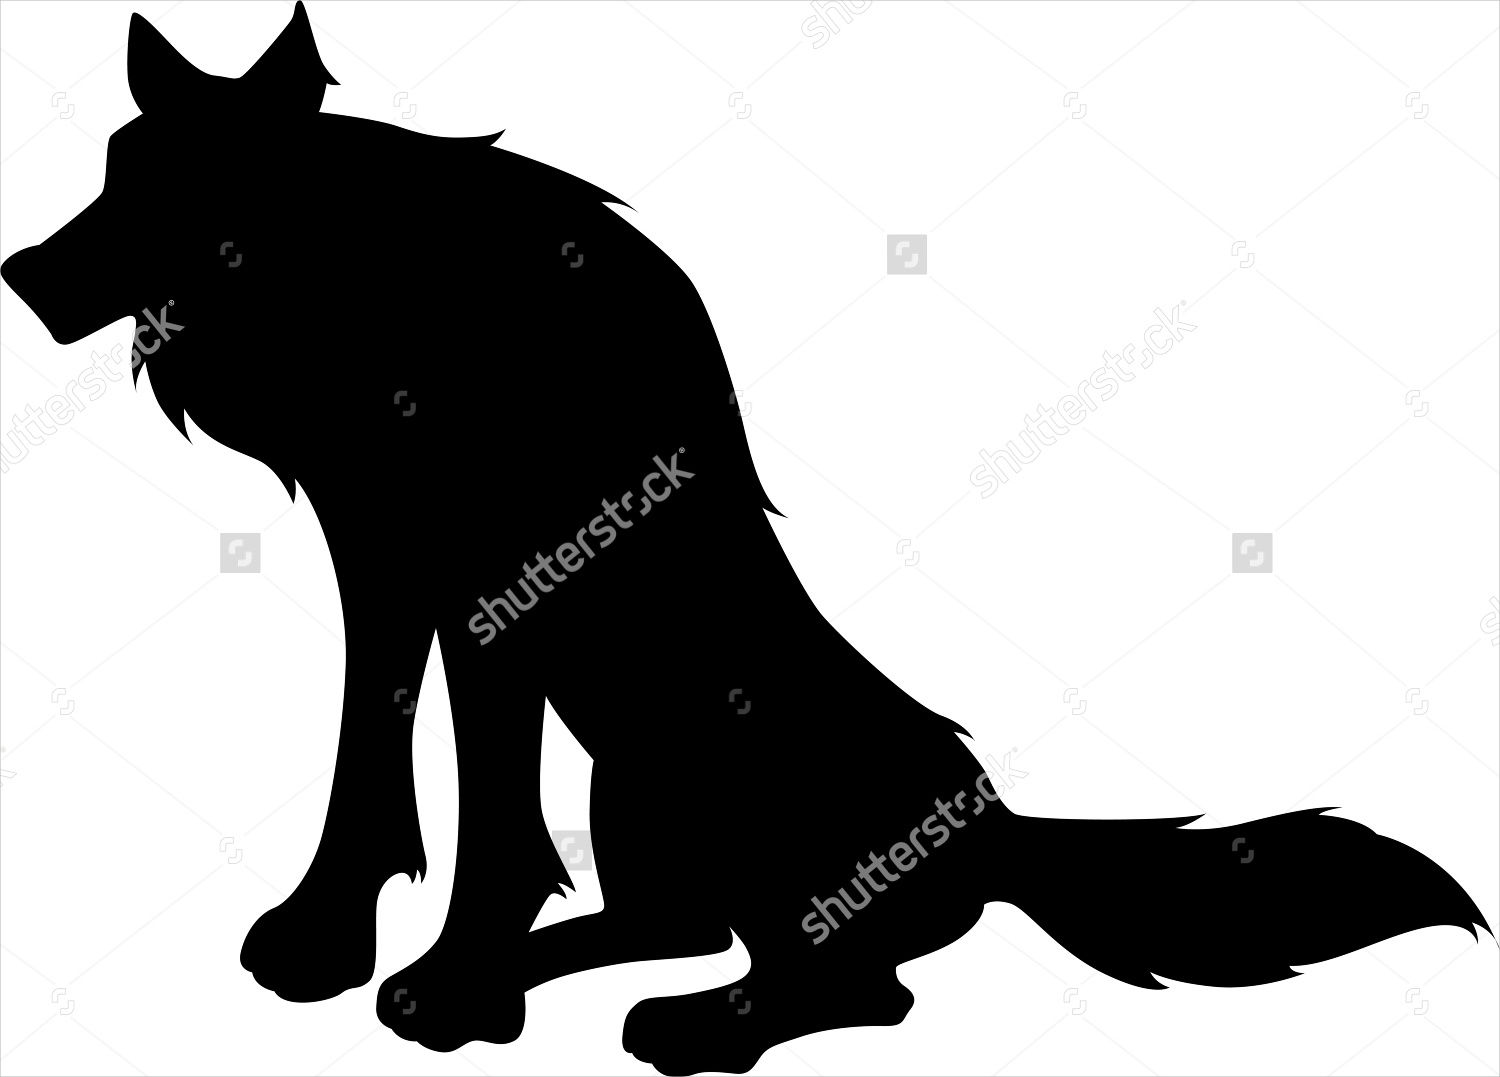 Animal trends 2017 - 8 Wolf Silhouette Designs Vector Eps Format Download